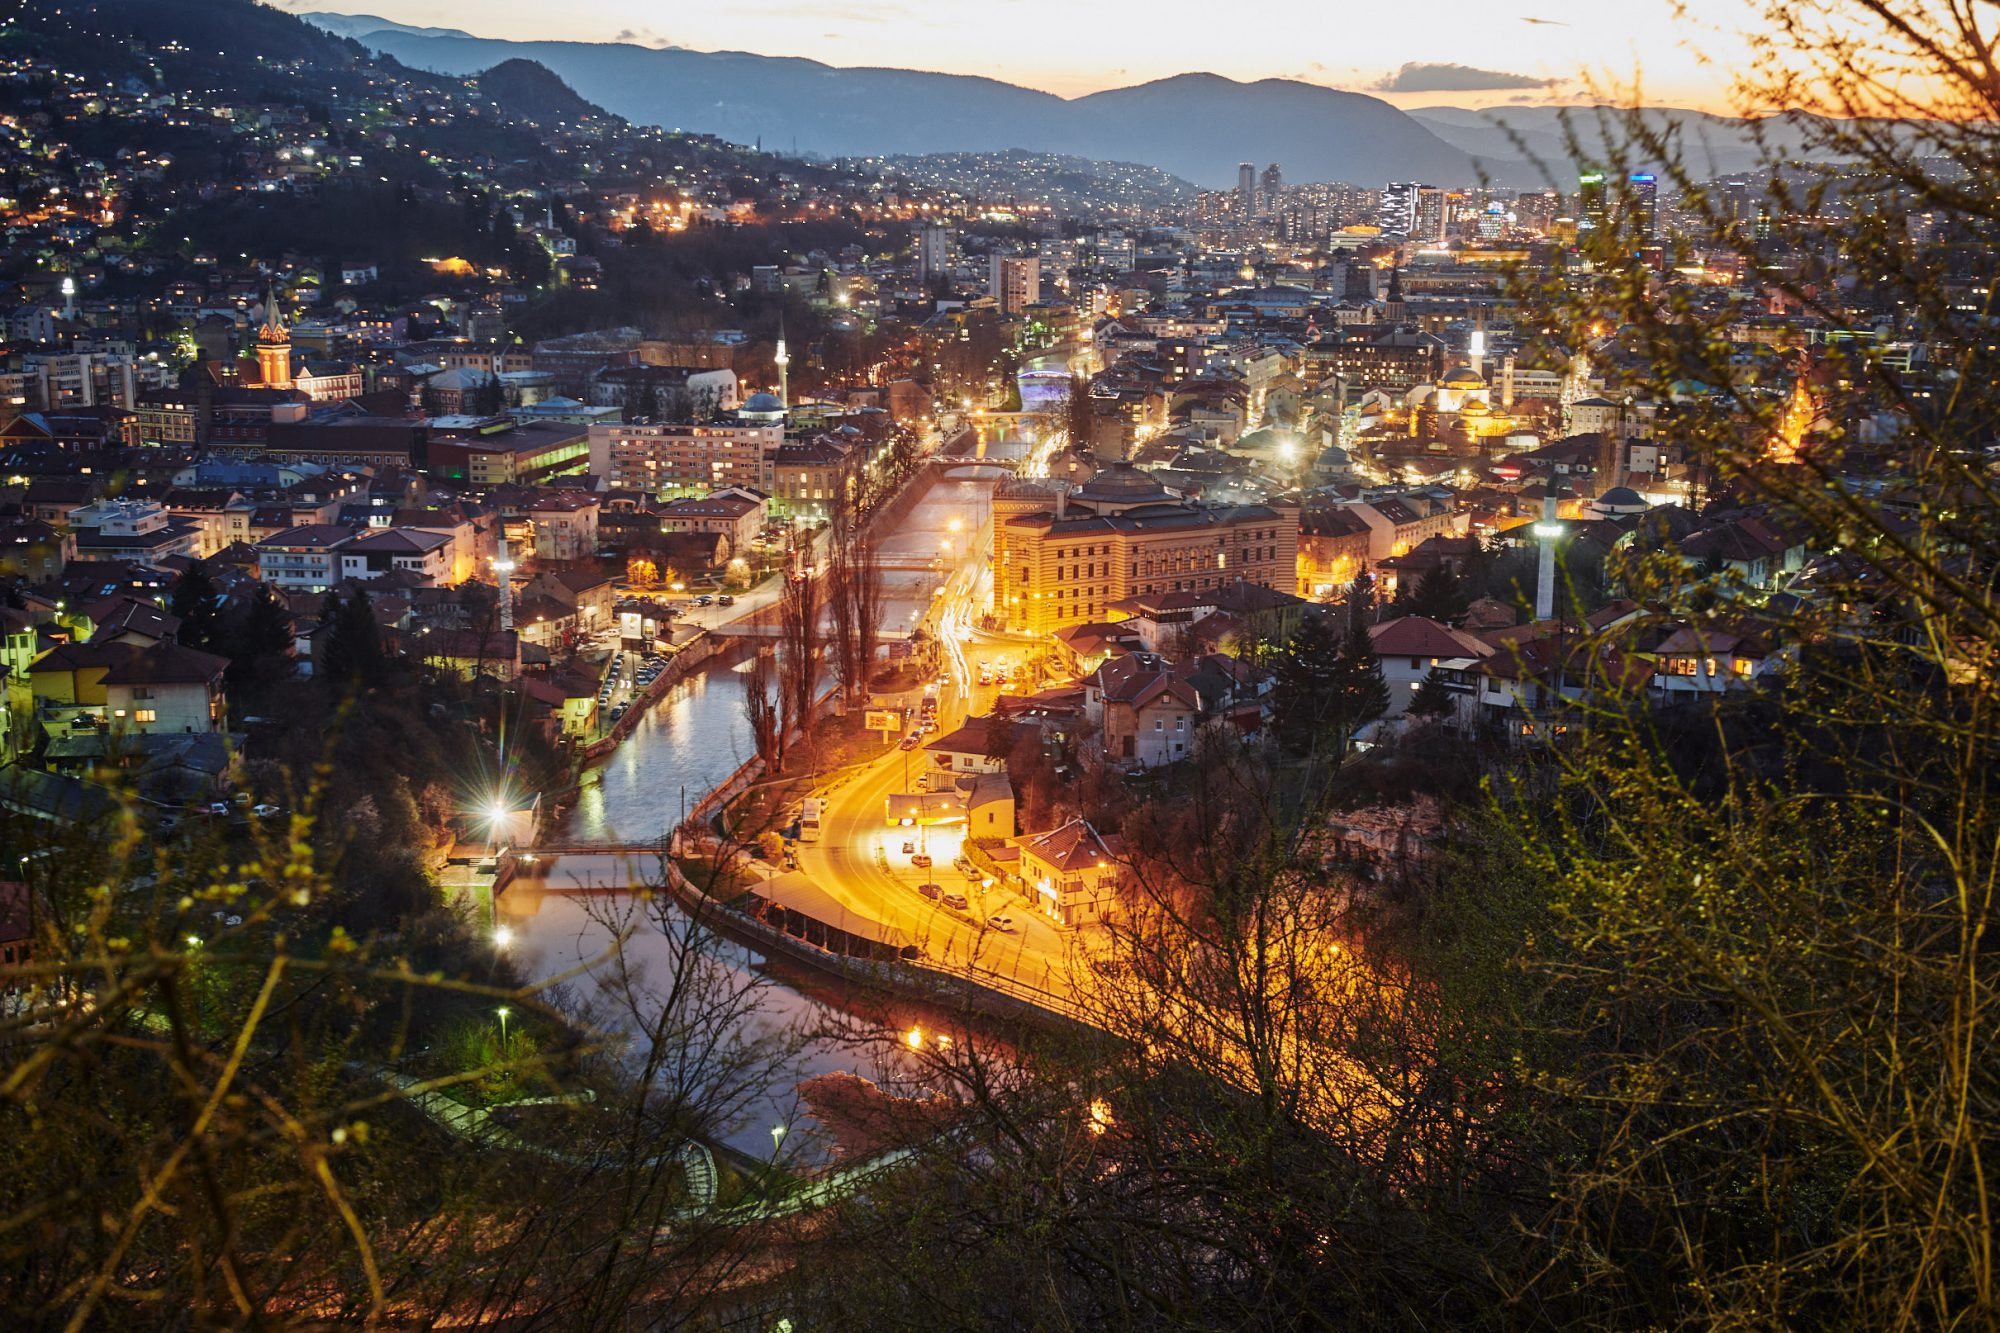 Vijećnica (City Hall) and Miljacka river floating through the night of Sarajevo